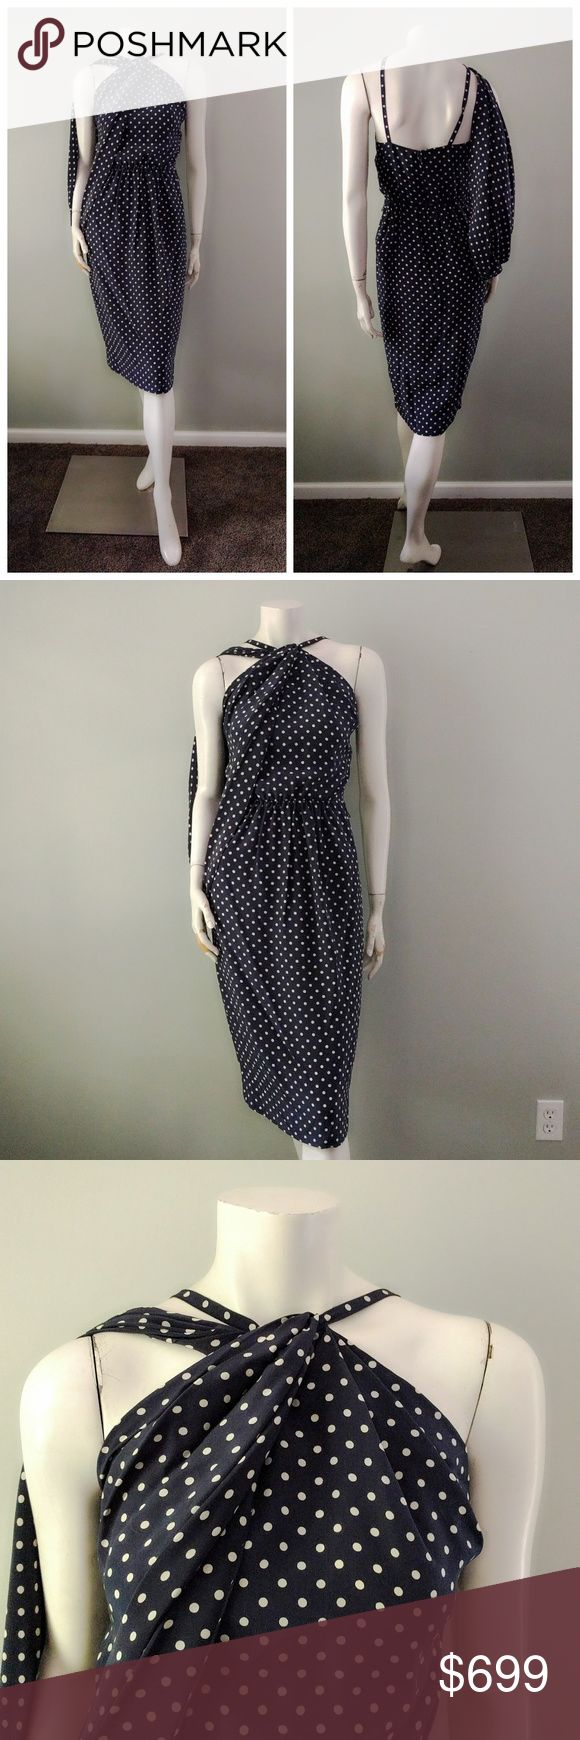 """VTG Bill Blass Silk Grecian Drape Polka Dot Dress From the estate of the matriarch of the Mandel family, who vacationed in Capri, Italy. Custom-made, special order Bill Blass in pure silk. Flattering halter neck with gorgeous arm drape. Very Amal Clooney.  In near-mint vintage condition (9.999/10). No stains or signs of wear. Missing original scarf belt, just crying out for an Hermes replacement! Comes from a smoke-free home.  BRAND: Bill Blass. SIZE: Labeled 8. BUST: 36"""" (can be…"""